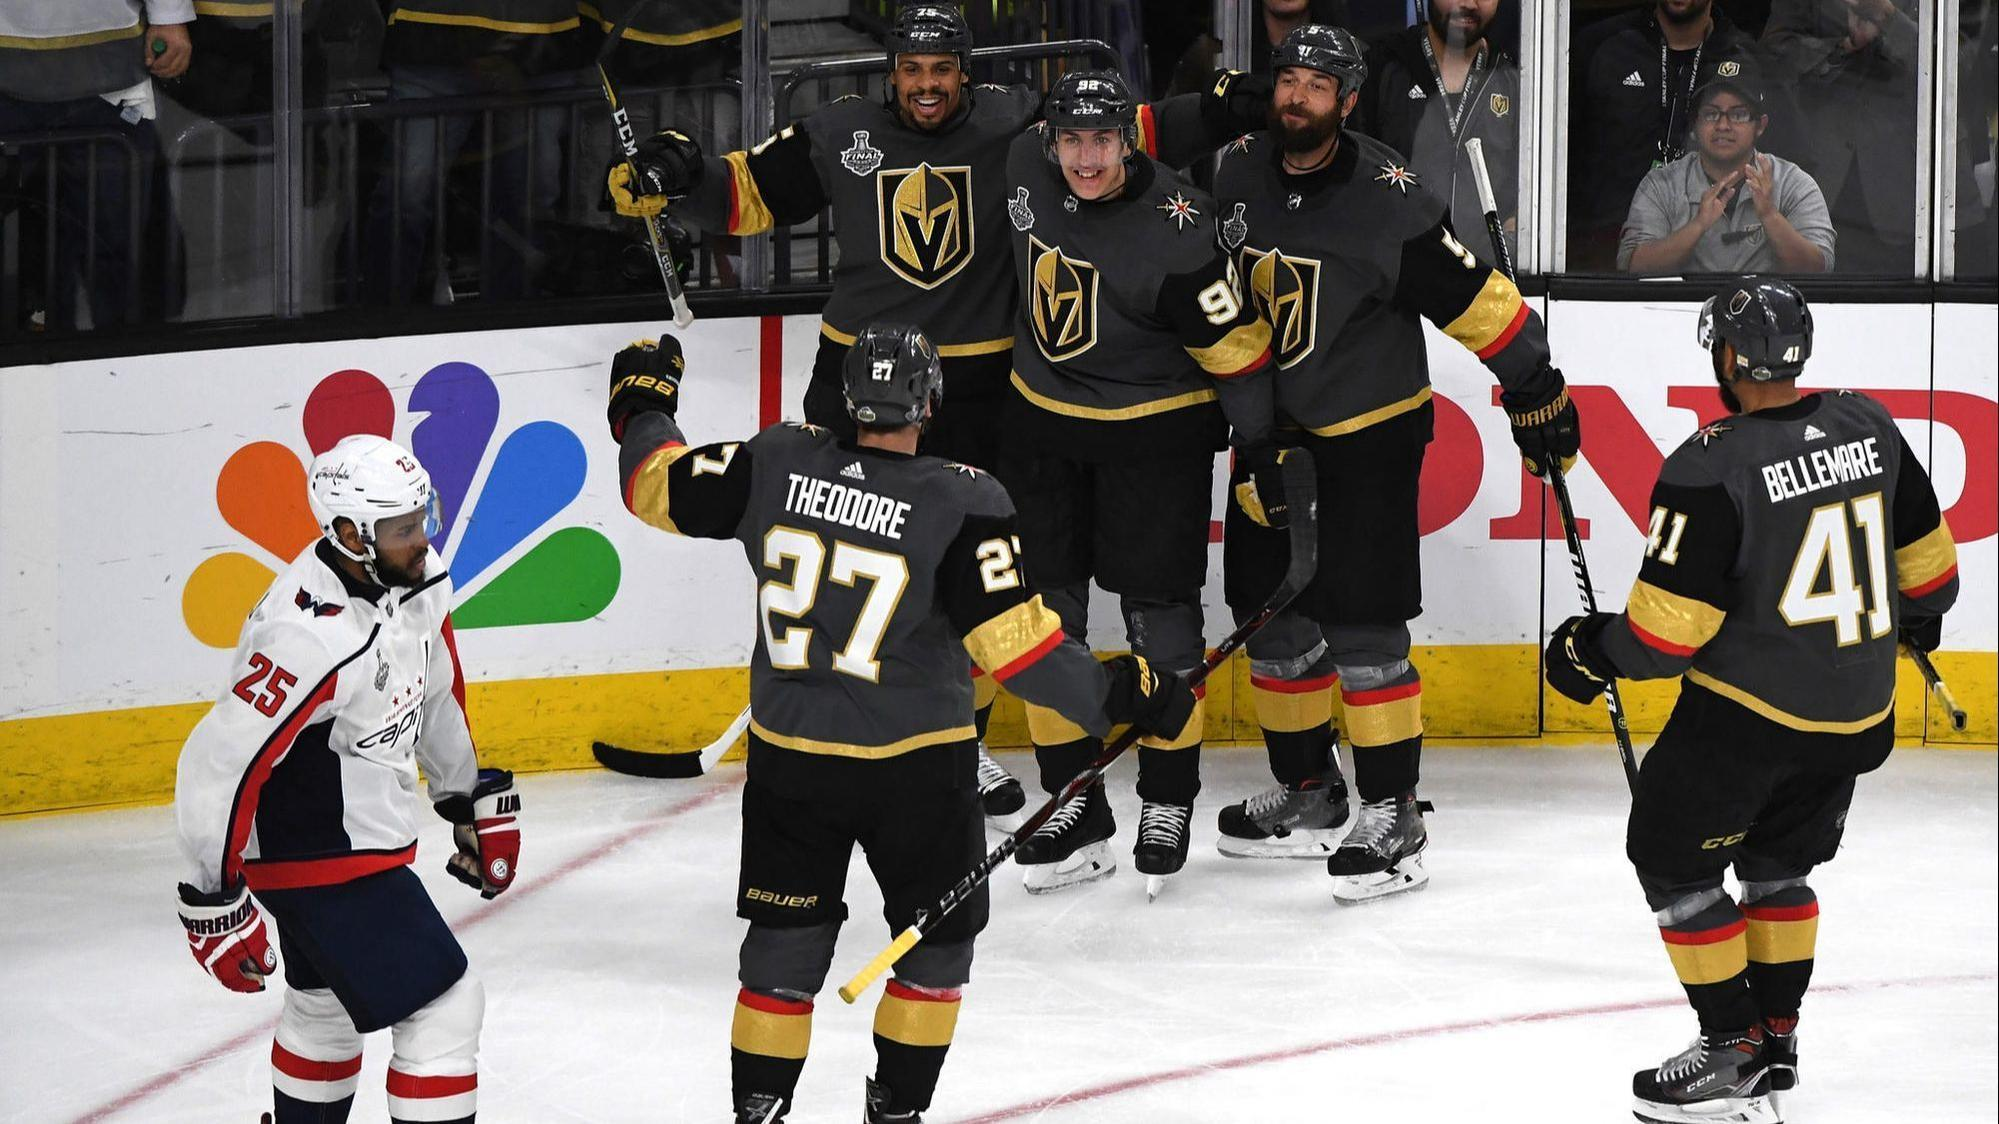 34e563cf8ae Golden Knights outlast Capitals 6-4 in Stanley Cup Final opener - Chicago  Tribune